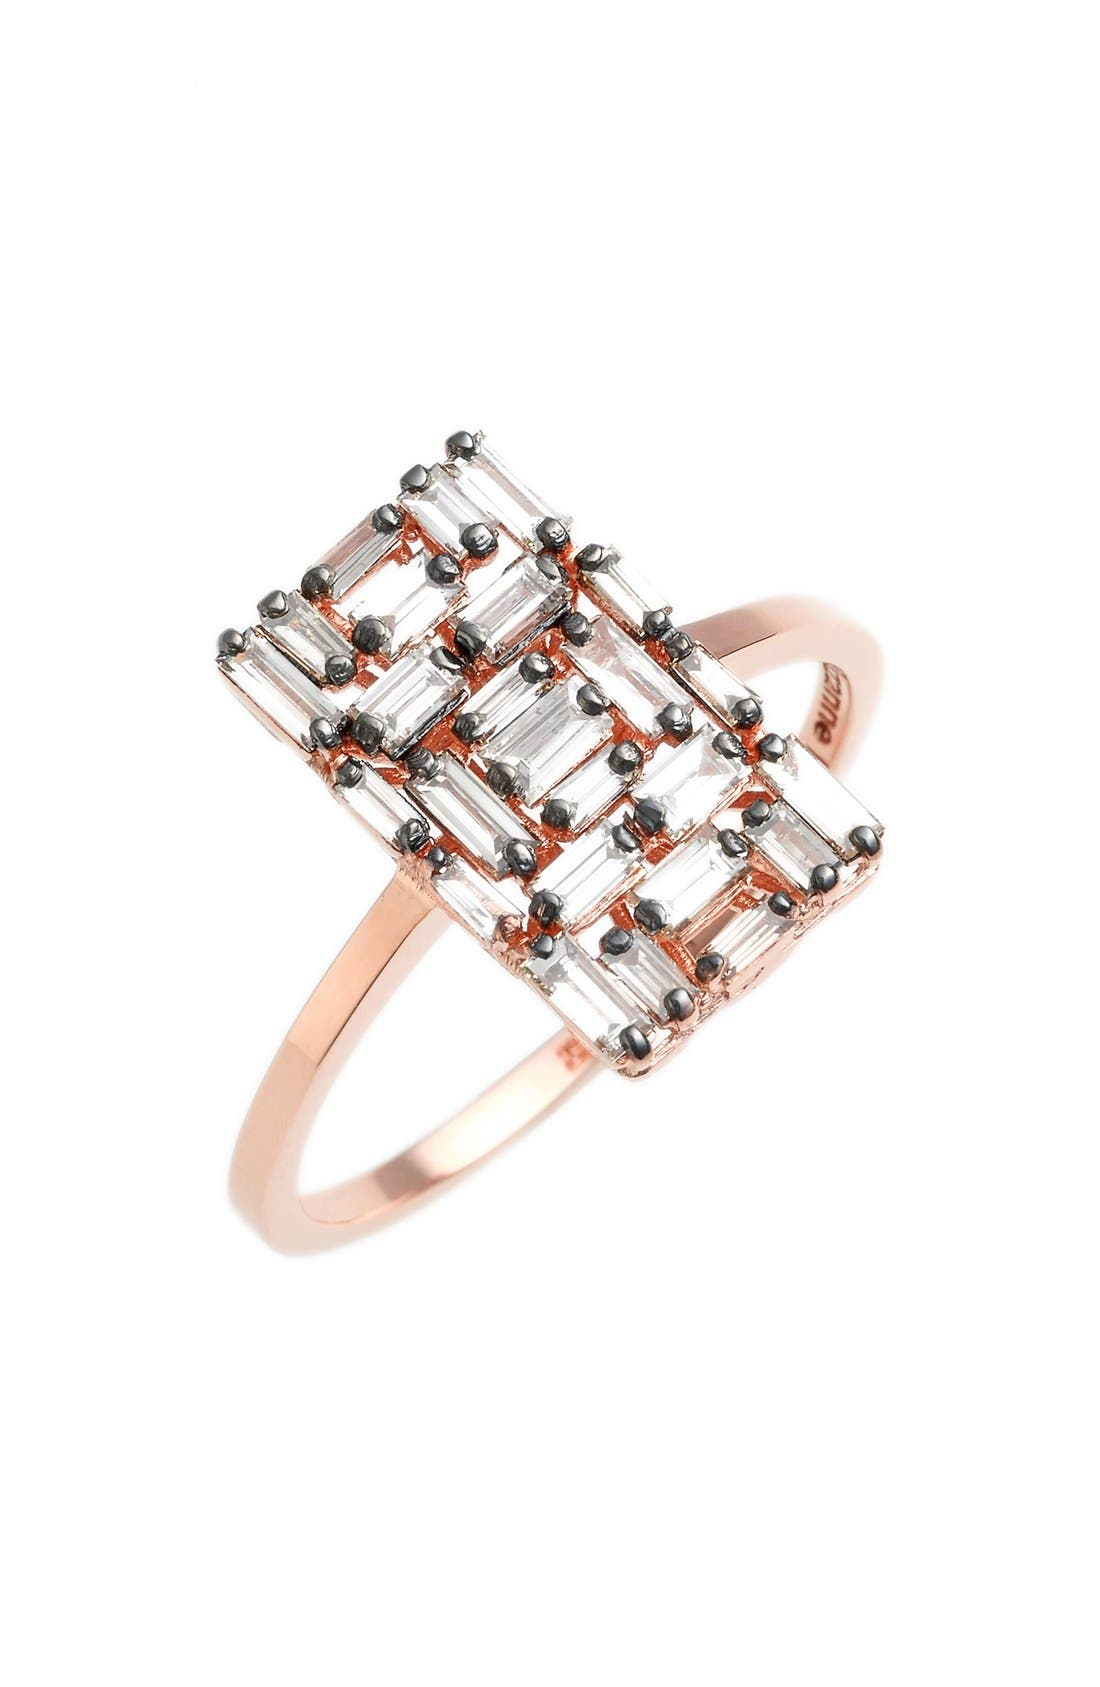 SUZANNE KALAN Fireworks Rectangular Baguette Diamond Ring